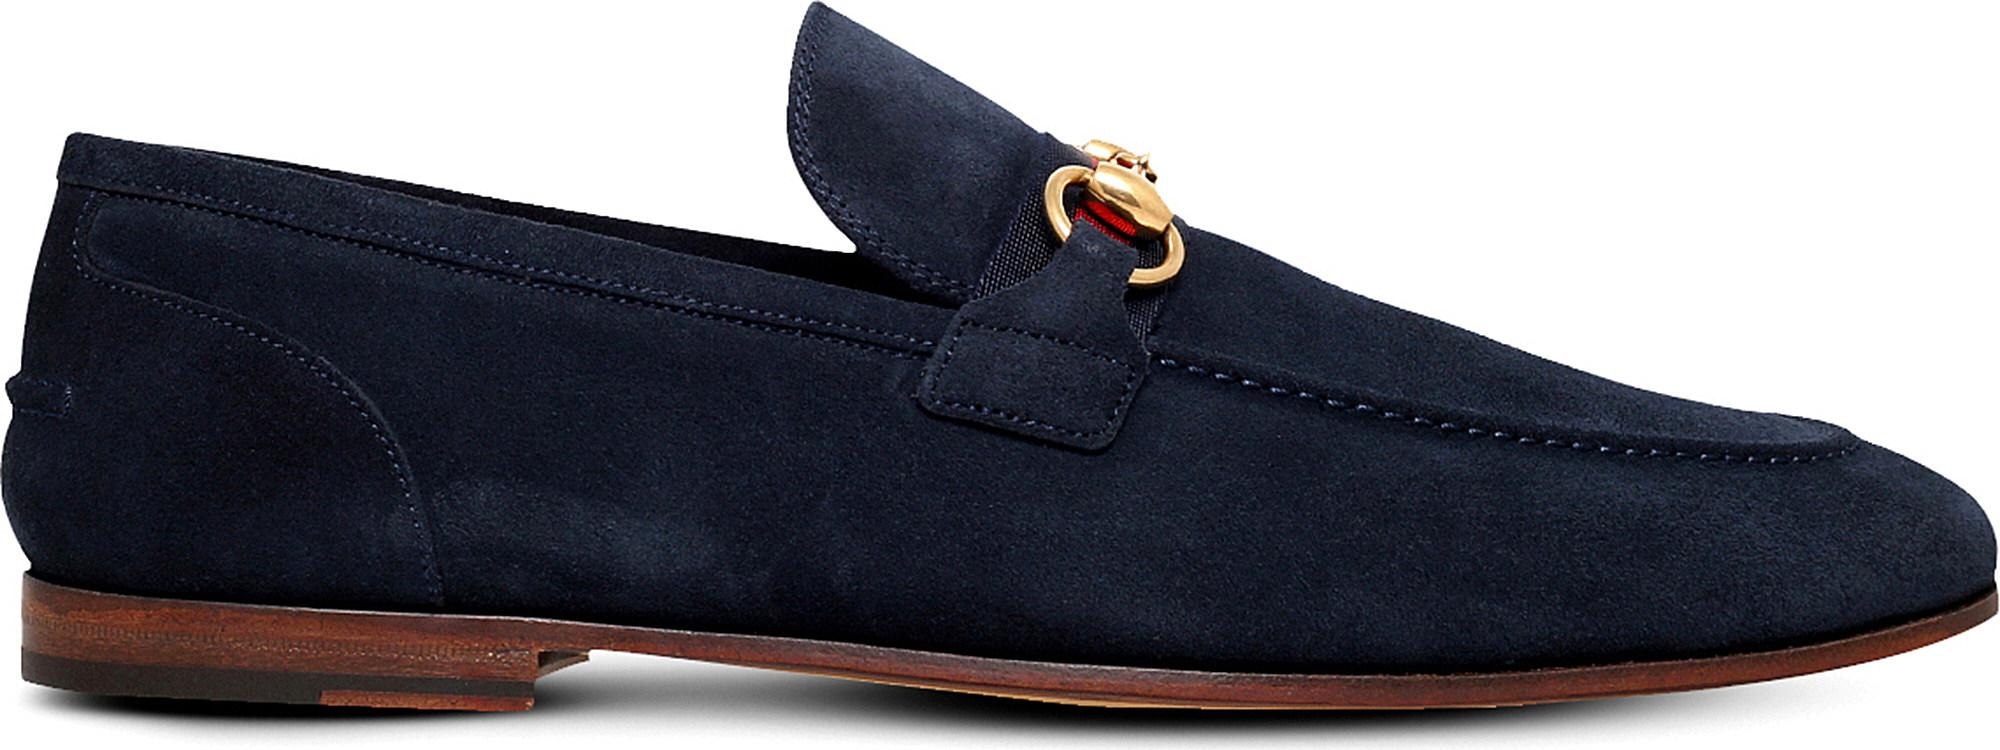 d37573c986a Lyst - Gucci Elanor Horsebit Suede Loafers in Black for Men